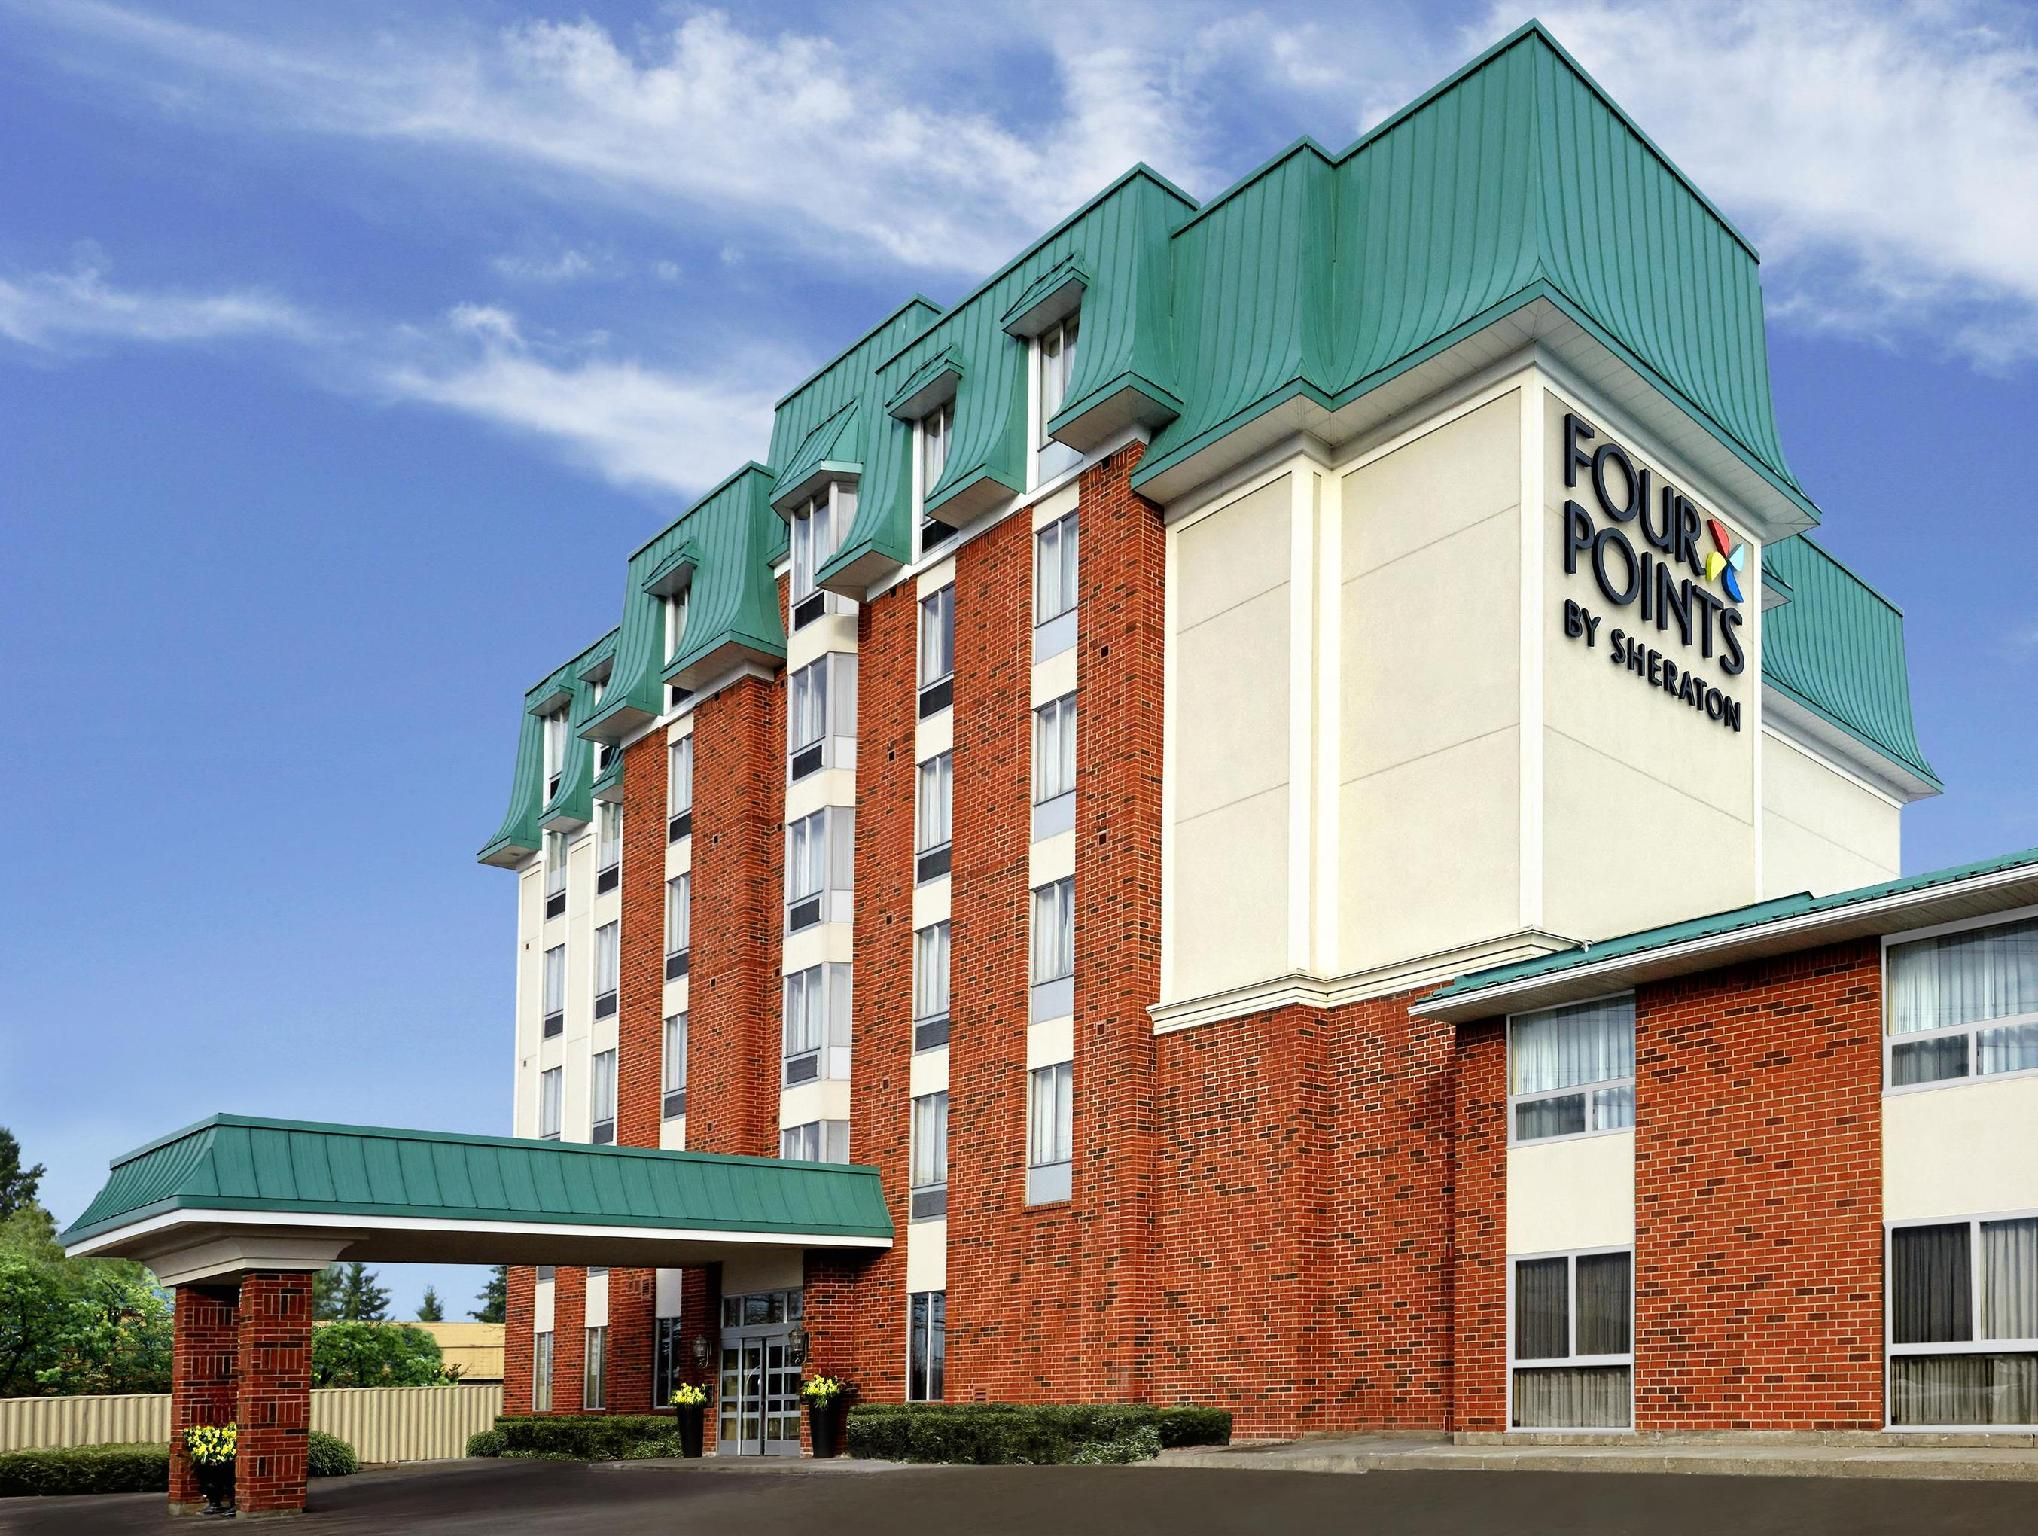 Four Points by Sheraton Waterloo Kitchener Hotel and Suites, Waterloo